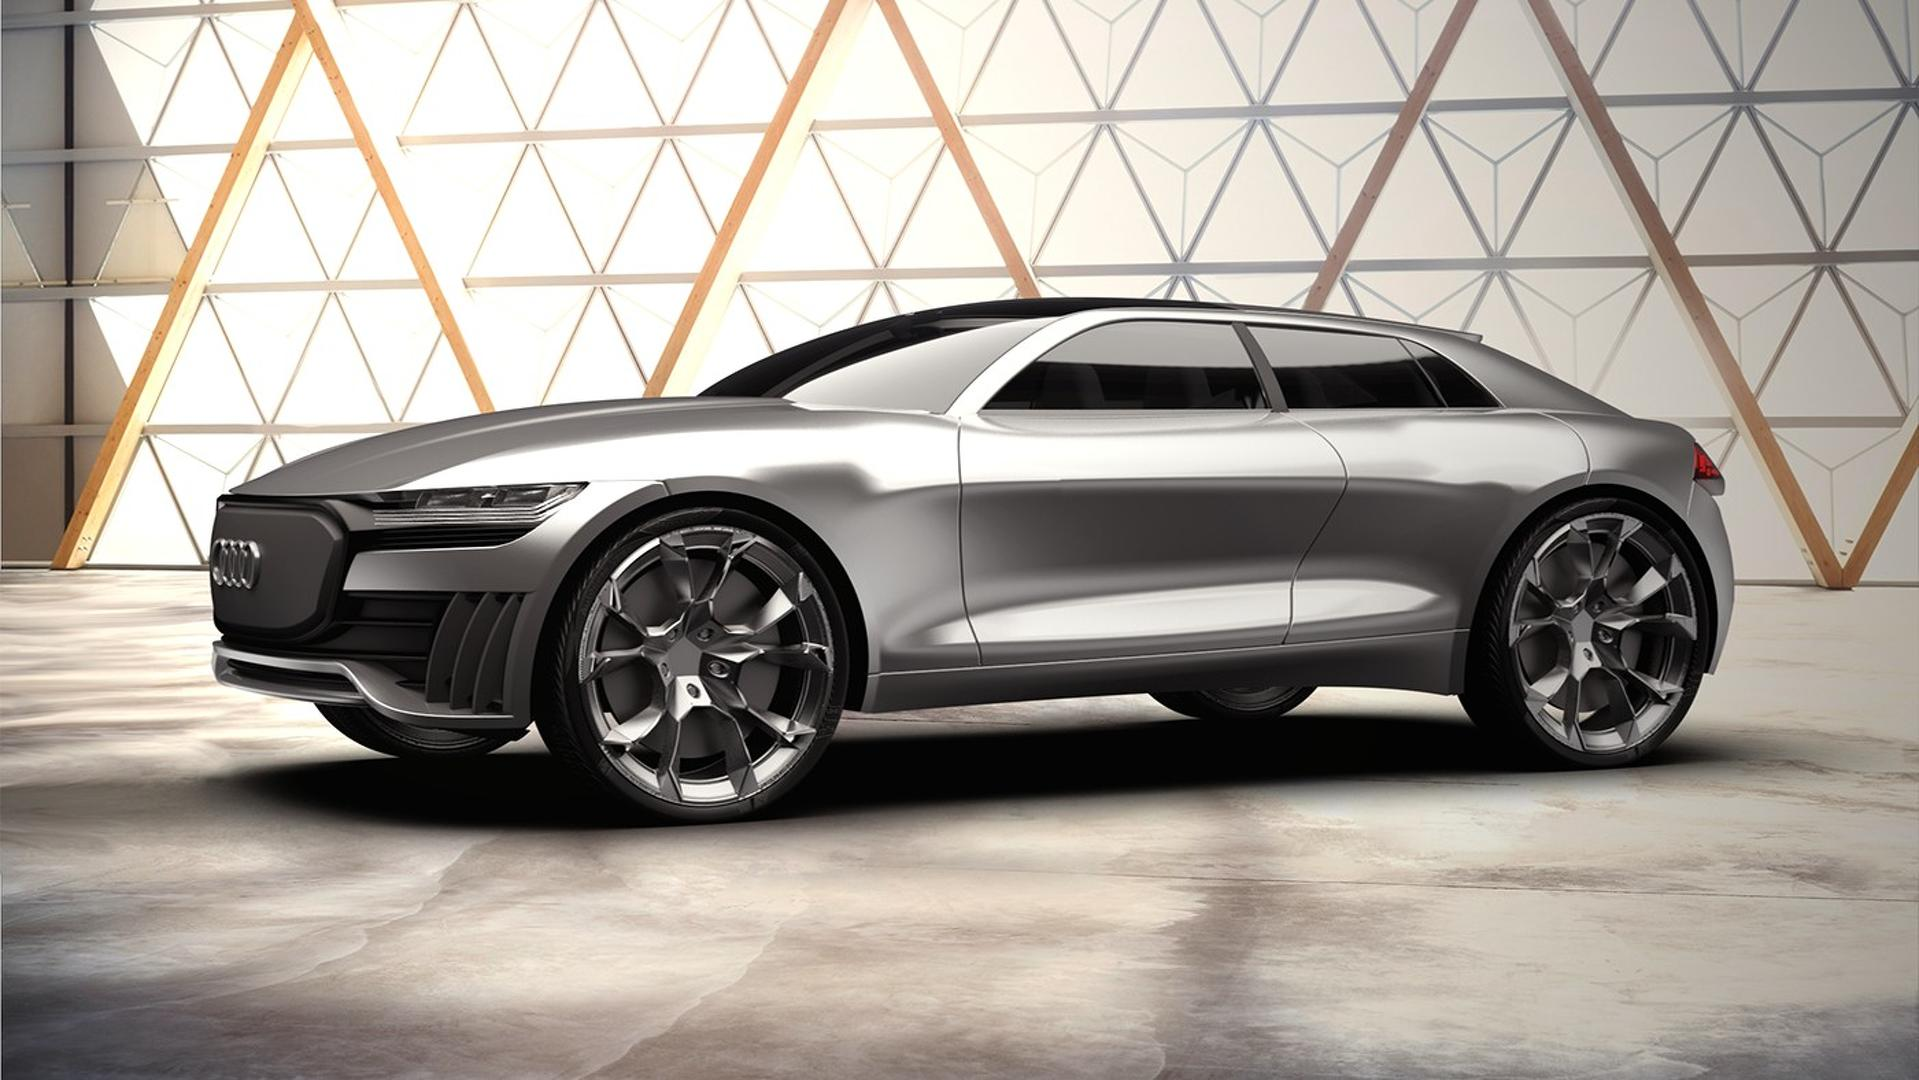 Audi Q ETron Concept Is An Interesting Electric SUV Proposal - Audi q4